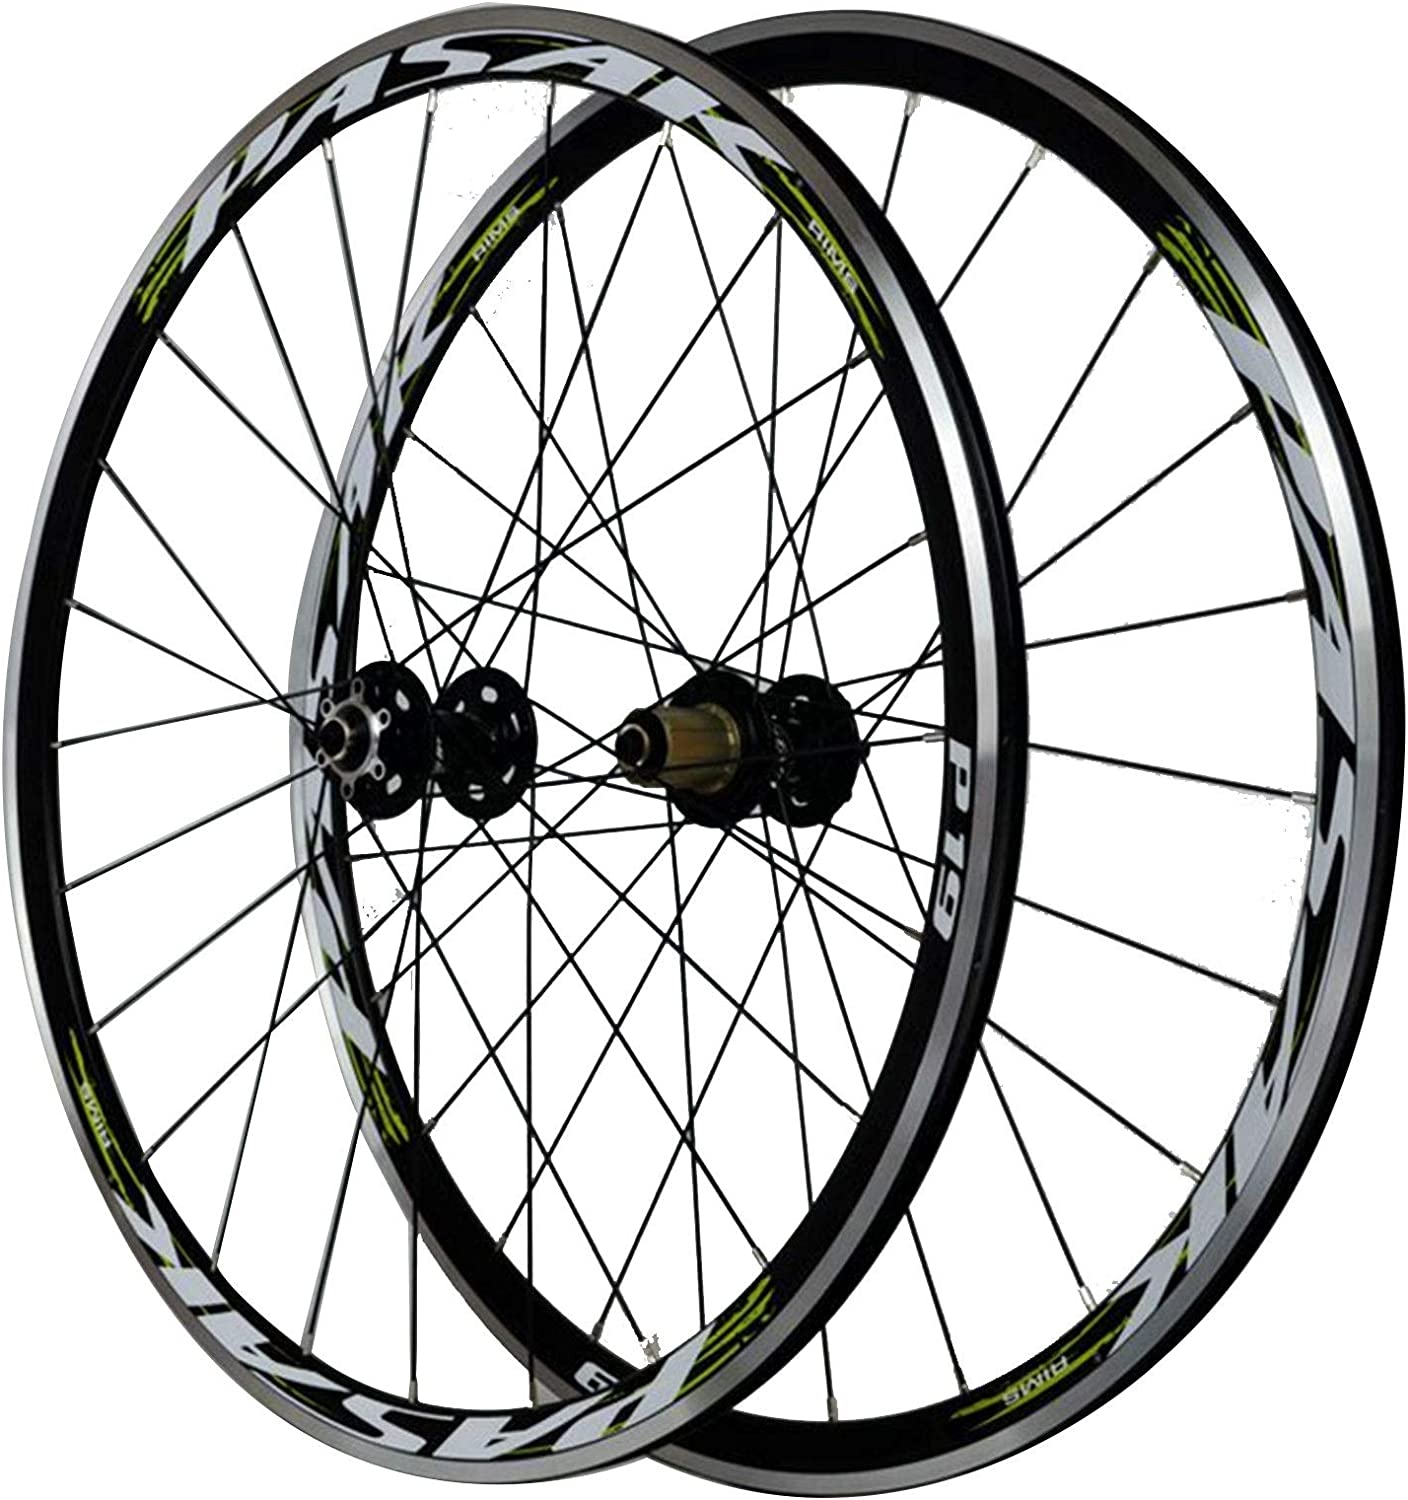 New products world's highest quality popular CHICTI Cycling Wheels 700c Double Off-Road Brake Vehicle Overseas parallel import regular item V Wall